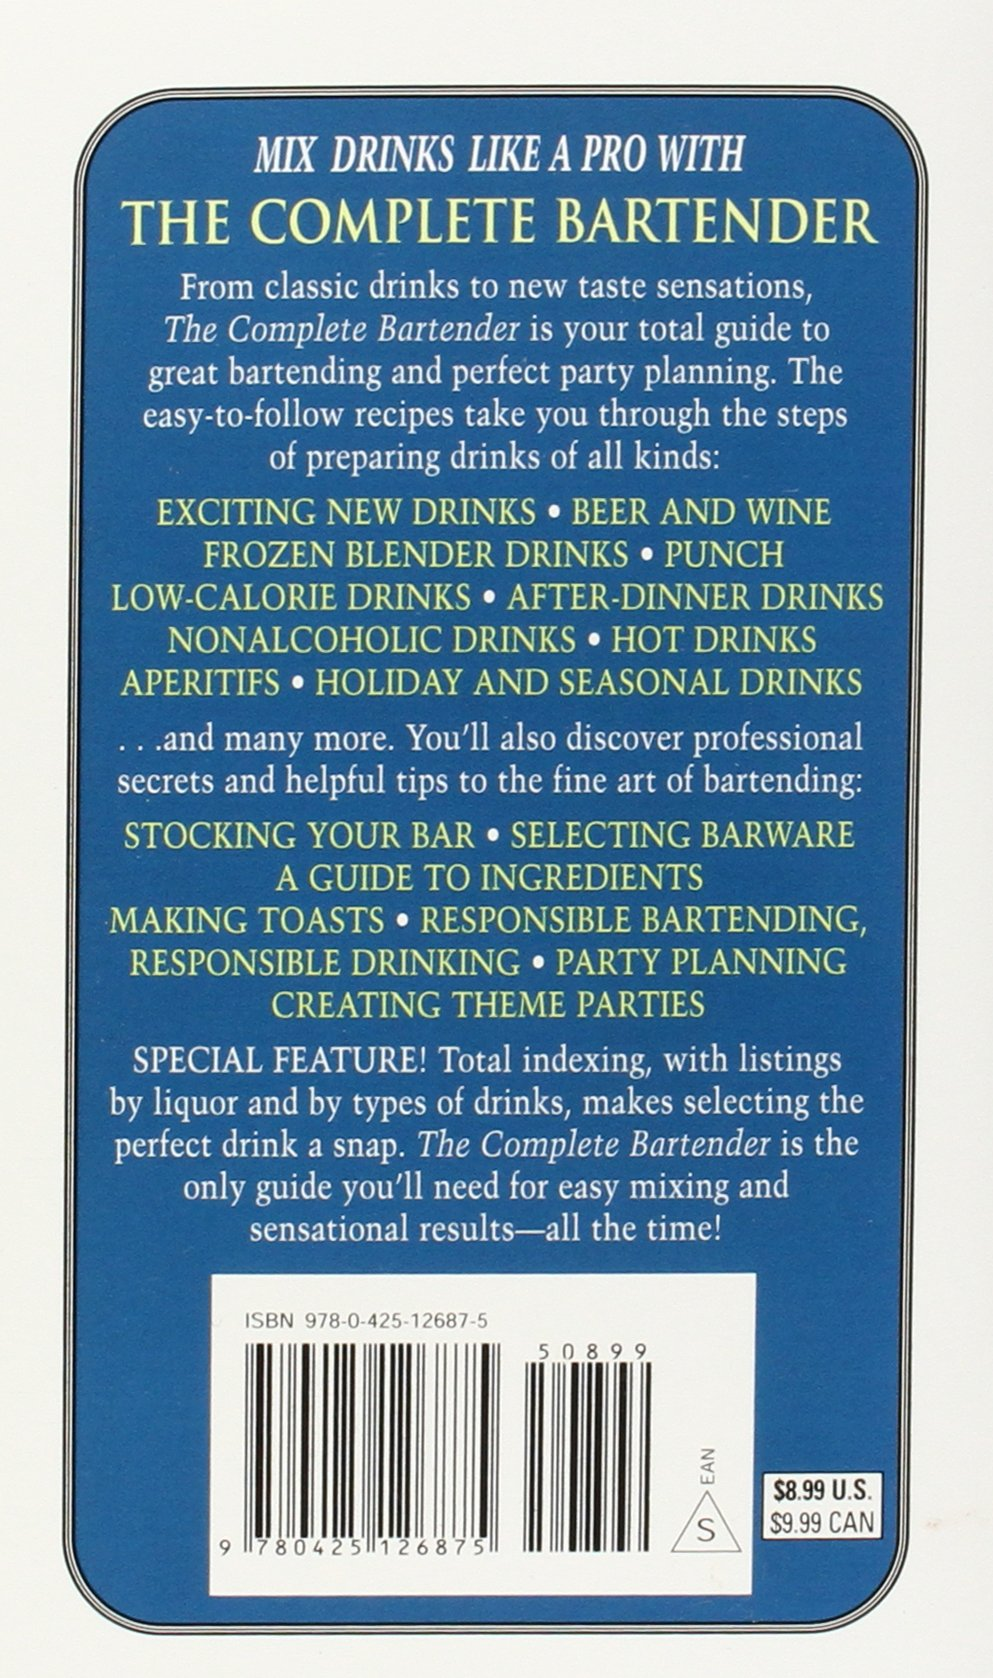 The Complete Bartender: Everything You Need to Know for Mixing Perfect  Drinks: Robyn M. Feller: 9780425126875: Amazon.com: Books